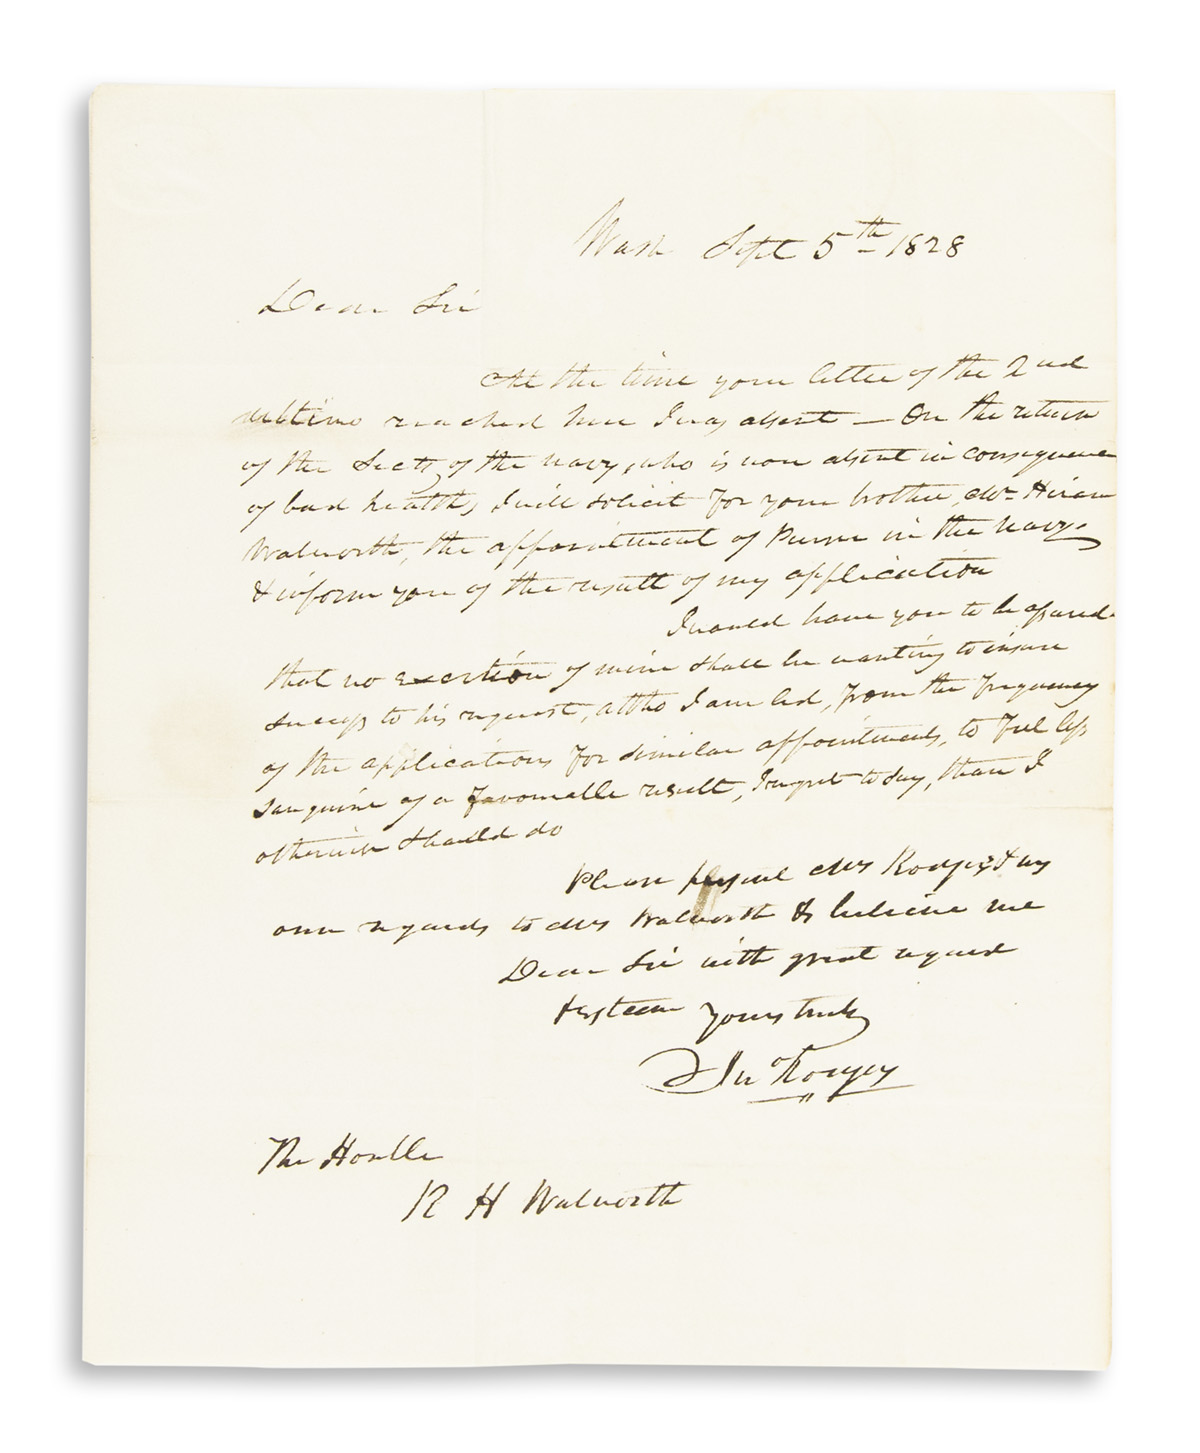 RODGERS-JOHN-Autograph-Letter-Signed-to-Chancellor-of-New-Yo